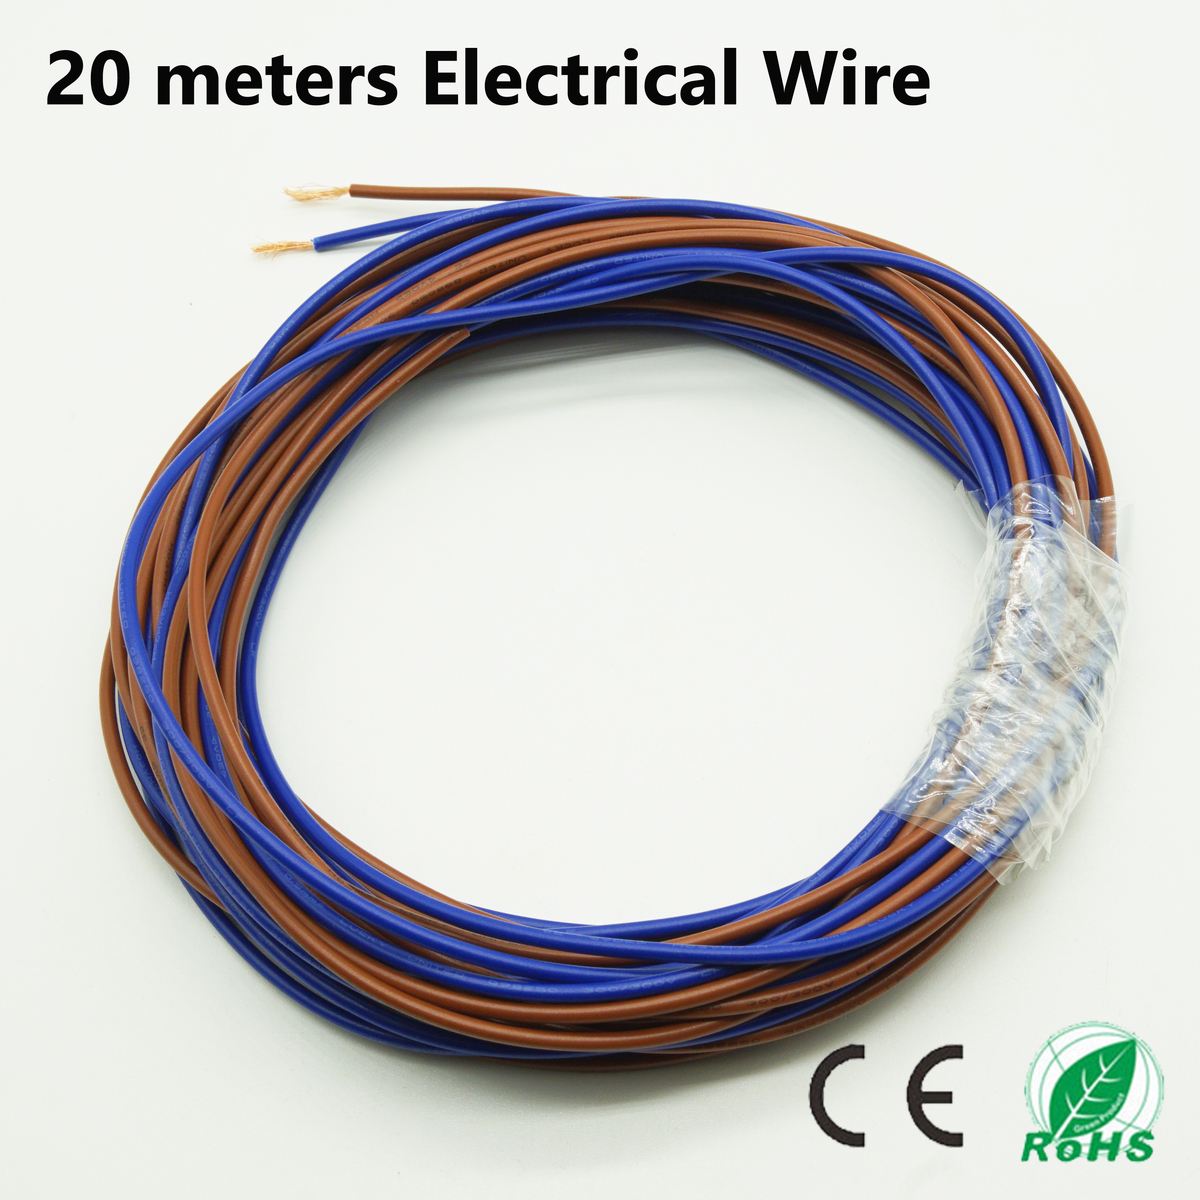 20 meters Electrical Wire Tinned Copper 2 Pin 20 AWG insulated PVC Extension LED Strip Cable Red Blue Wire Electric Extend Cord  sc 1 st  AliExpress.com : how to extend electrical wiring - yogabreezes.com